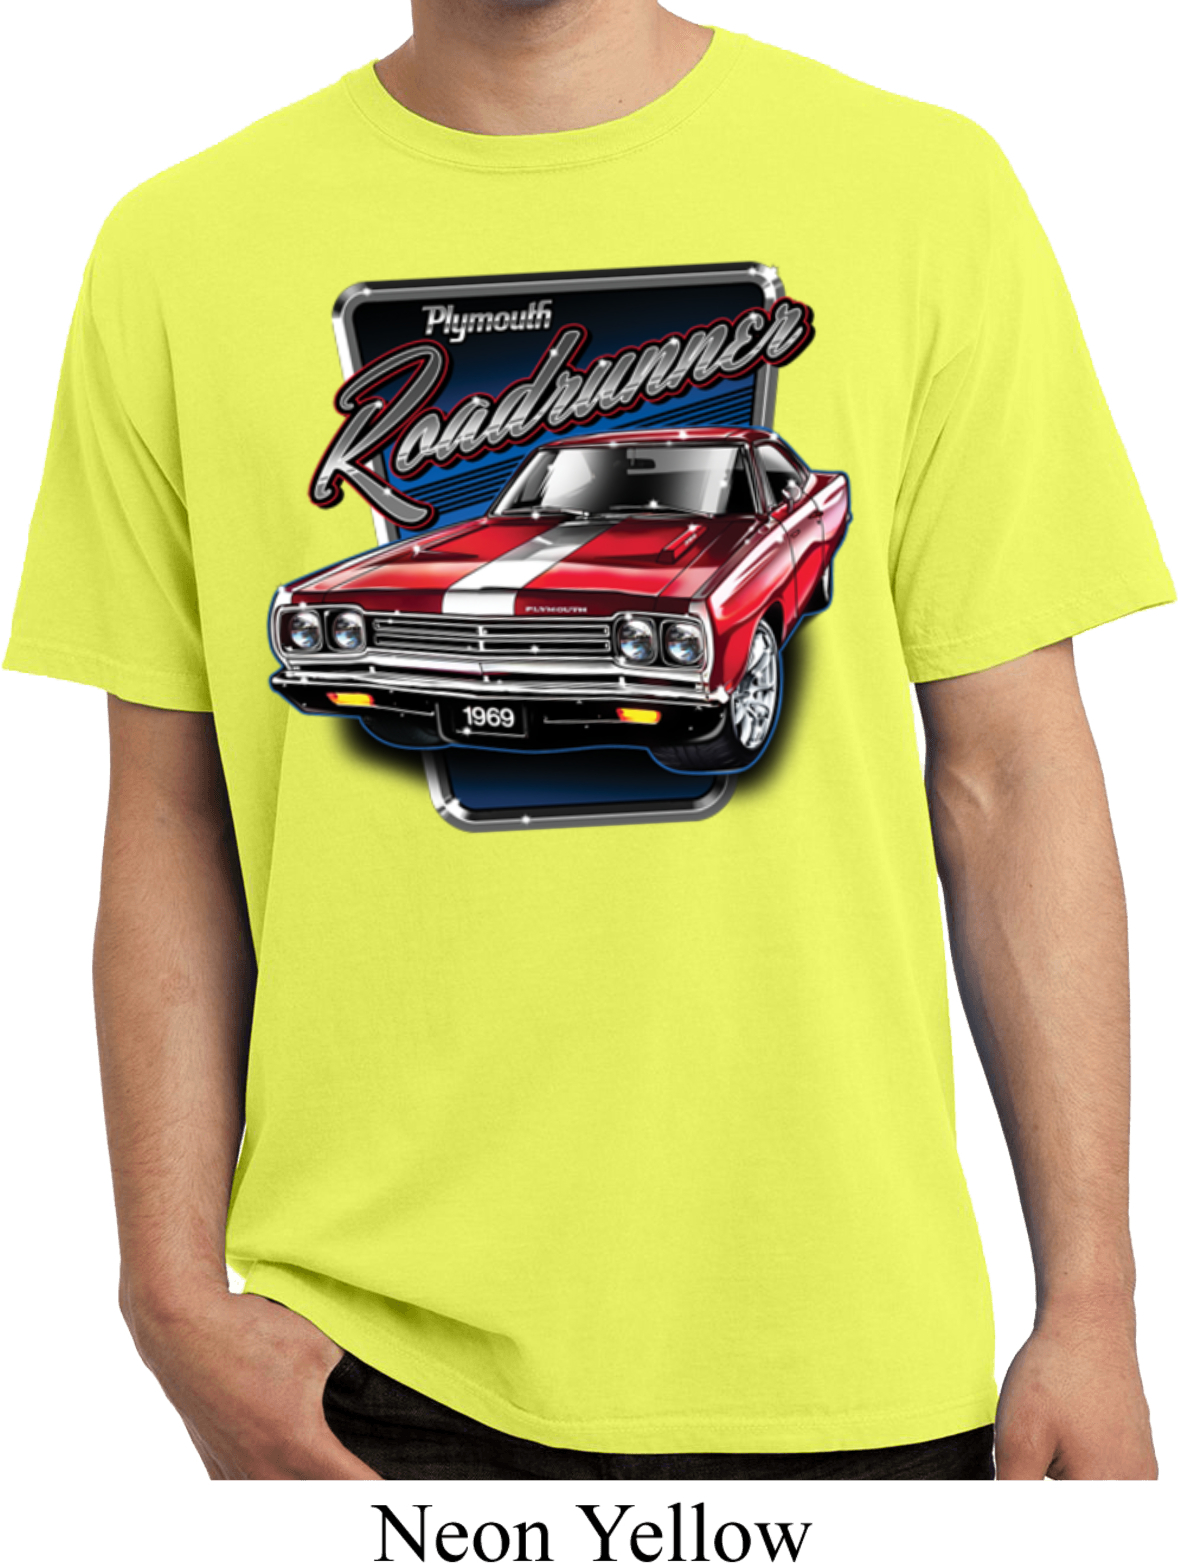 626554c2 Dodge Shirt Plymouth Roadrunner Pigment Dyed Tee T-Shirt - Plymouth  Roadrunner Mens Dodge Shirts